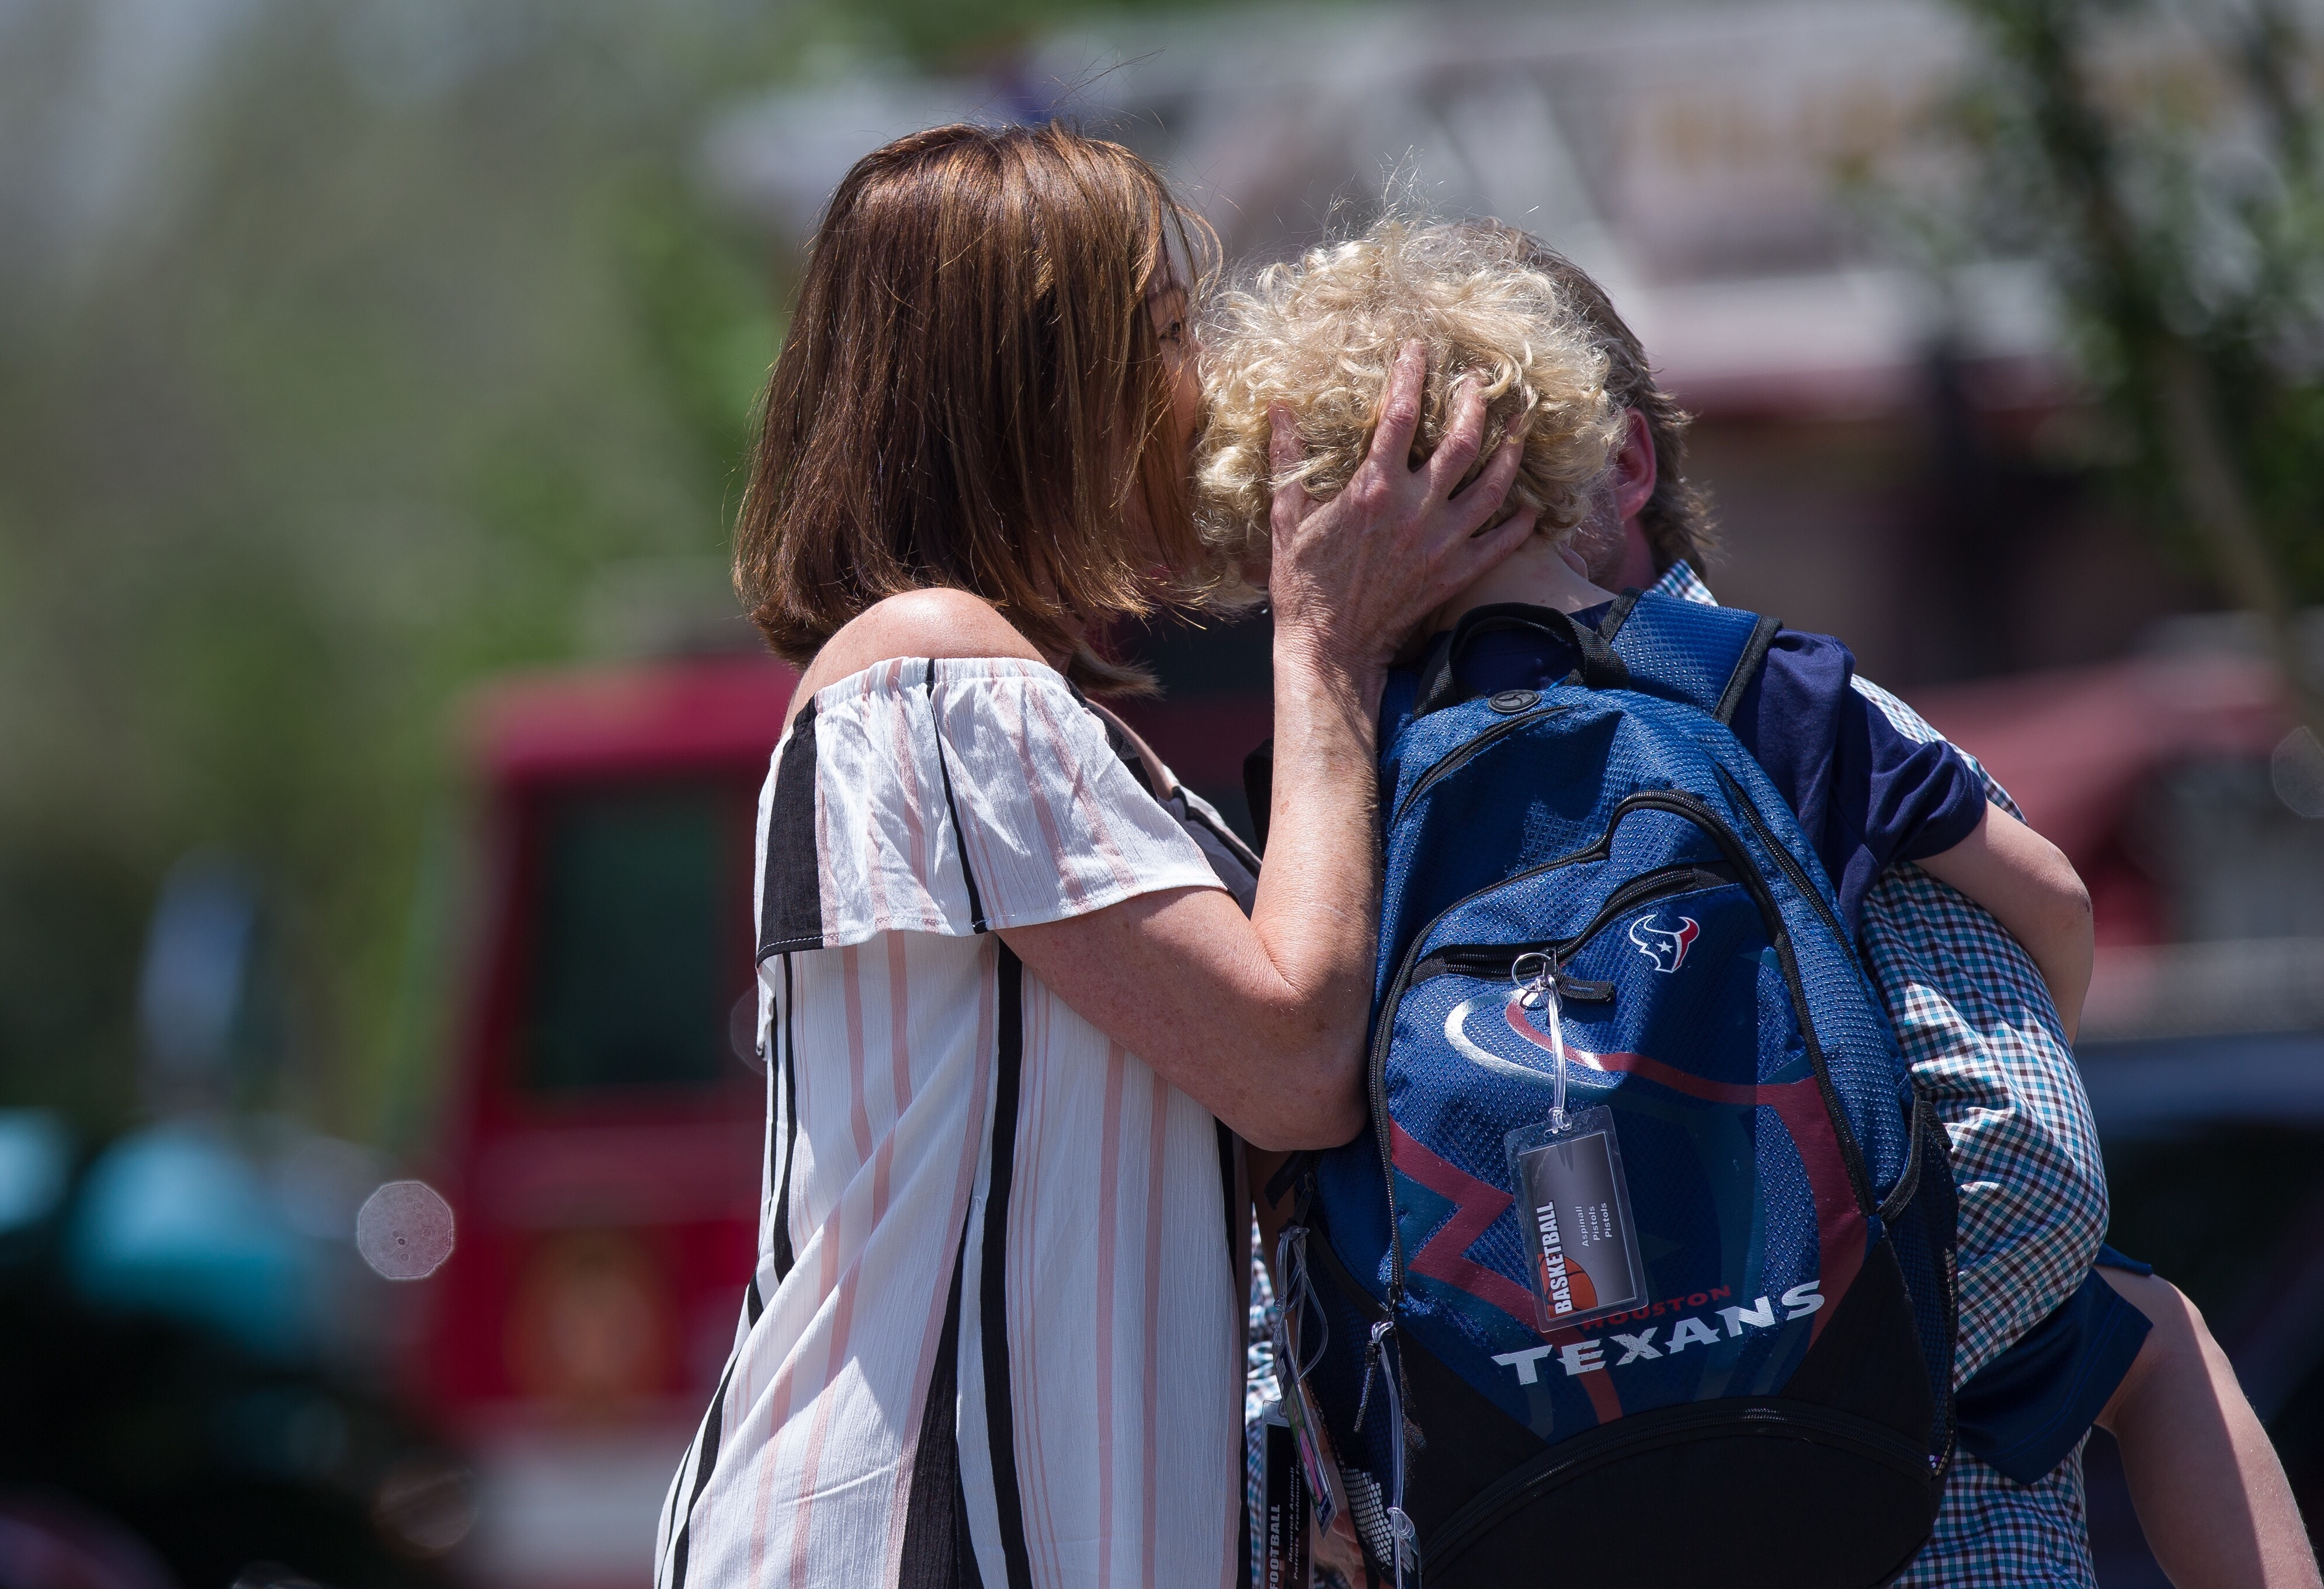 Parents picked up their children from school after a science experiment explosion injured children at the Yellow School at Memorial Drive Presbyterian Church, May 16, 2017, in Houston.